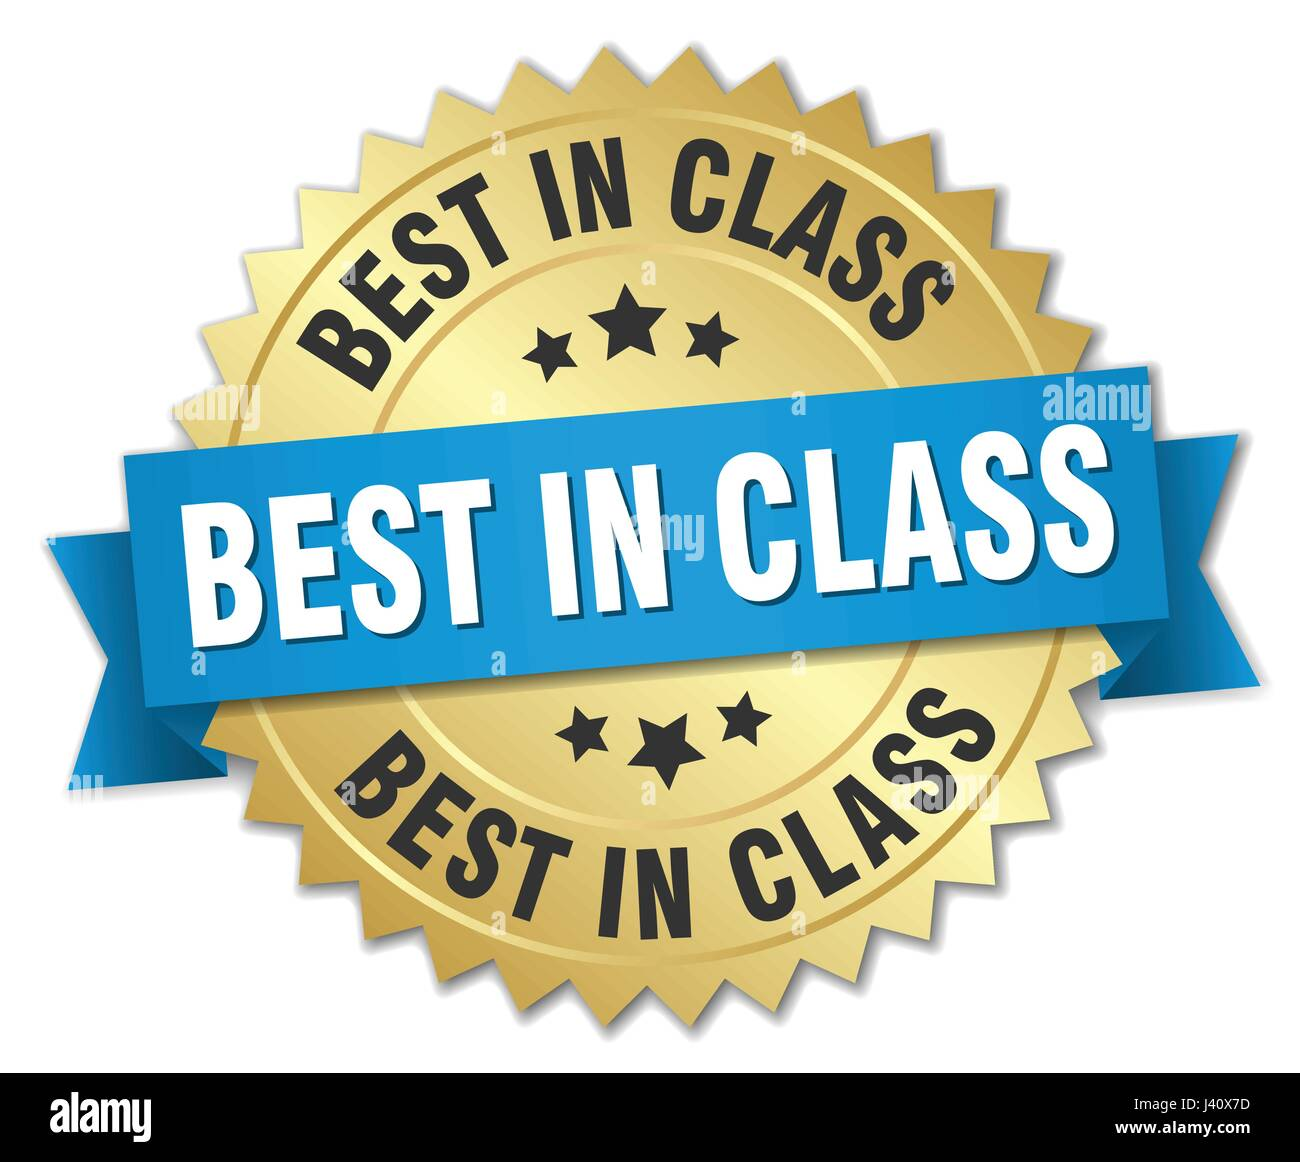 Image result for best in class